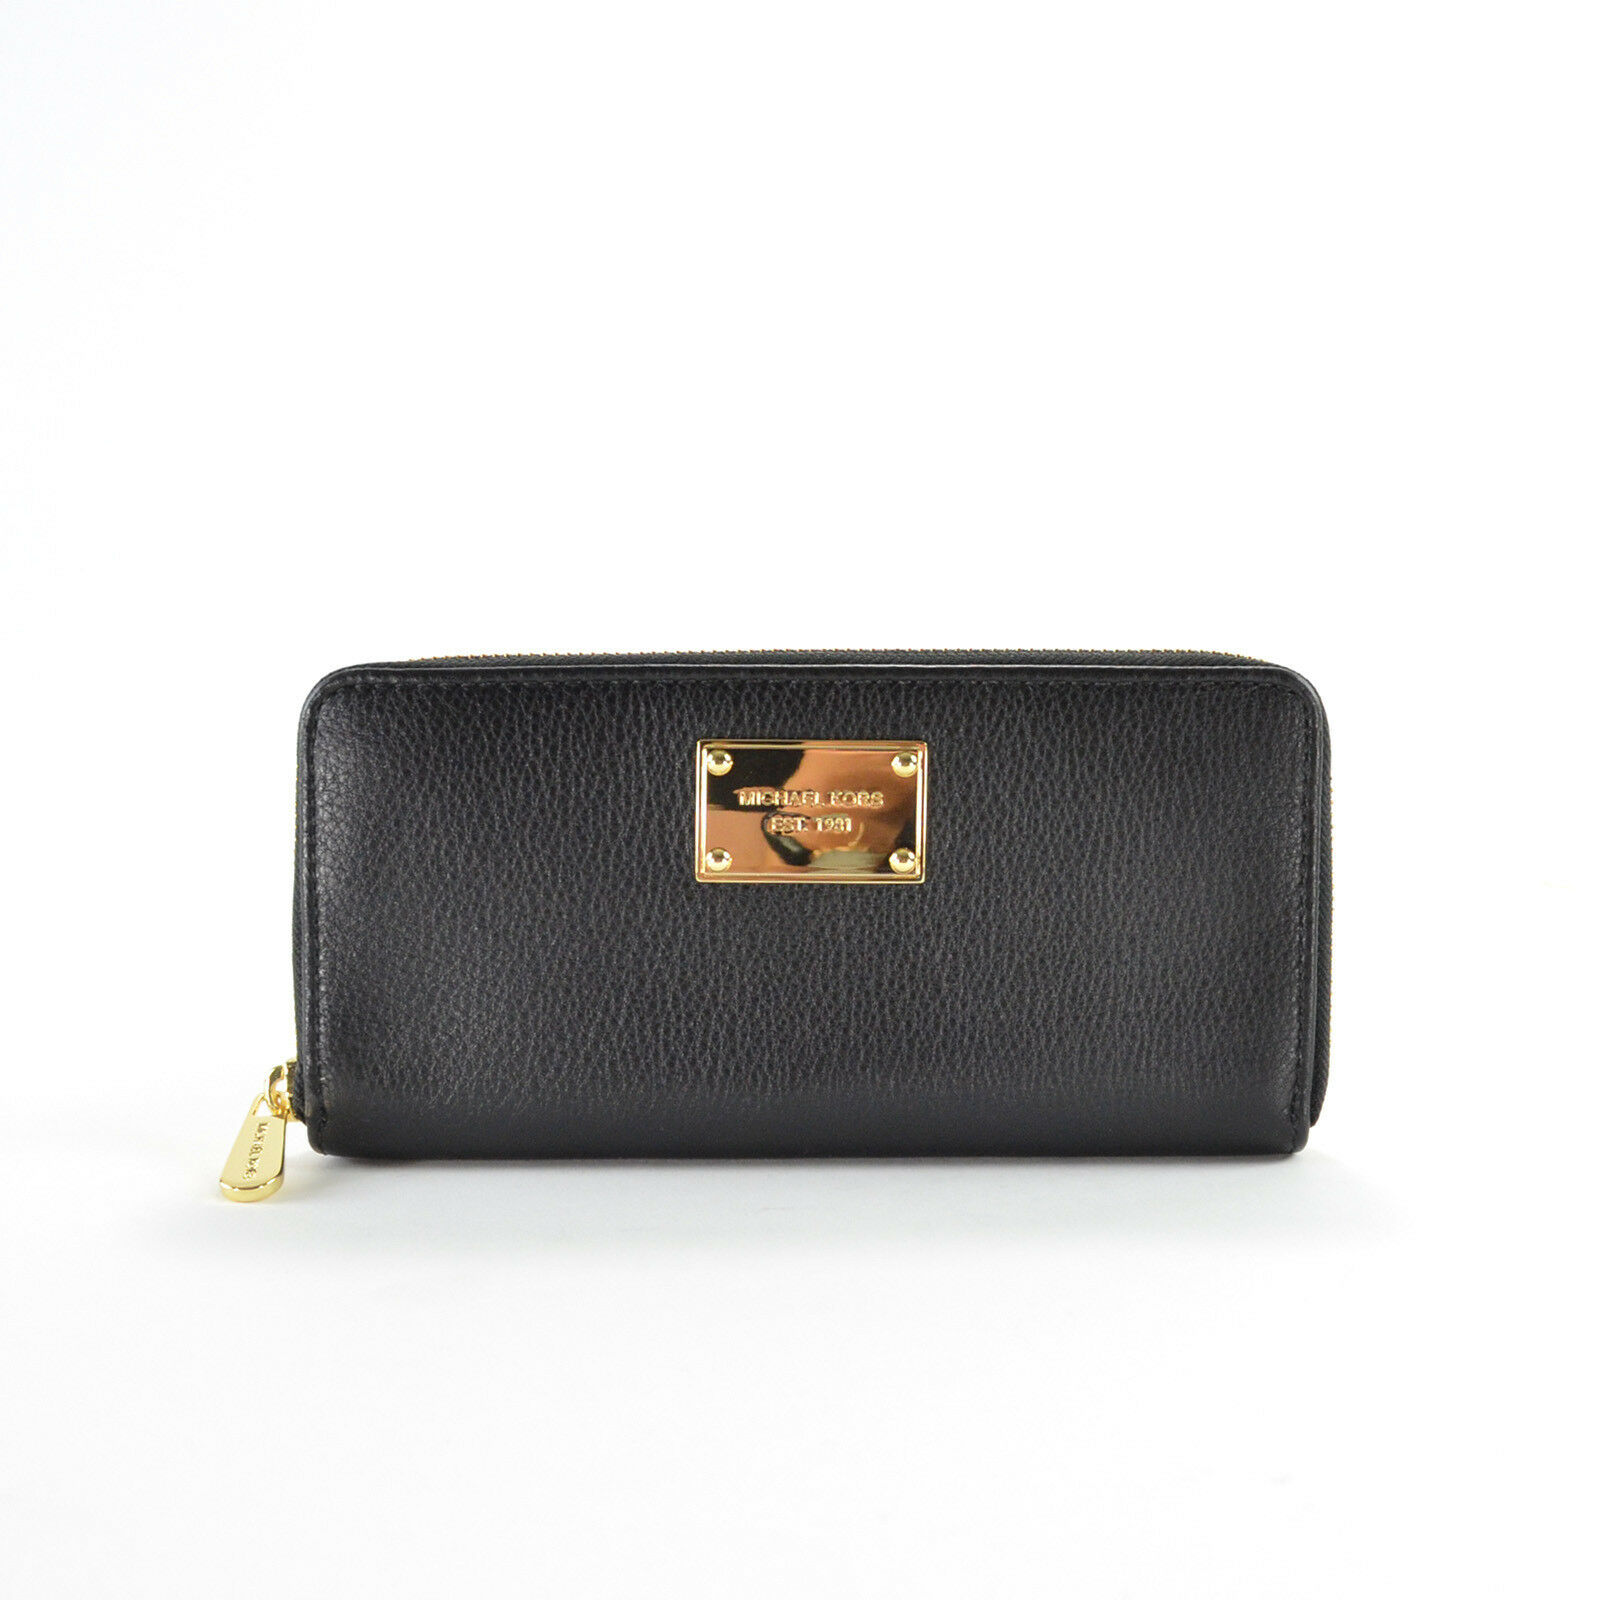 5d77ff827d56 Details about Michael Kors Leather Jet Set Travel Continental Zip Around  Wallet BLACK